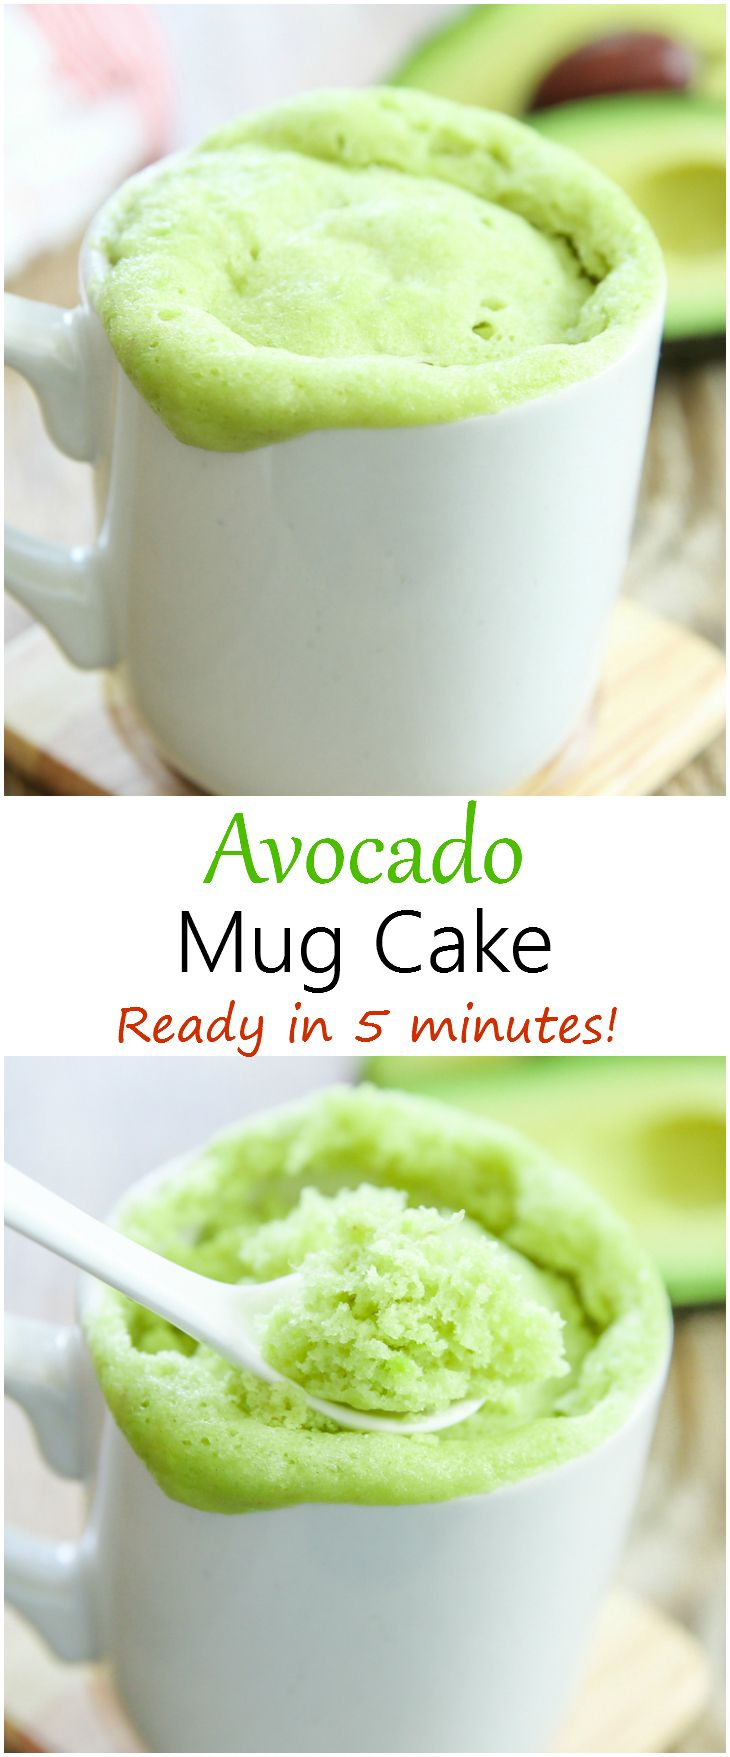 Avocado Mug Cake. A naturally spring green cake that is ready in 5 minutes.